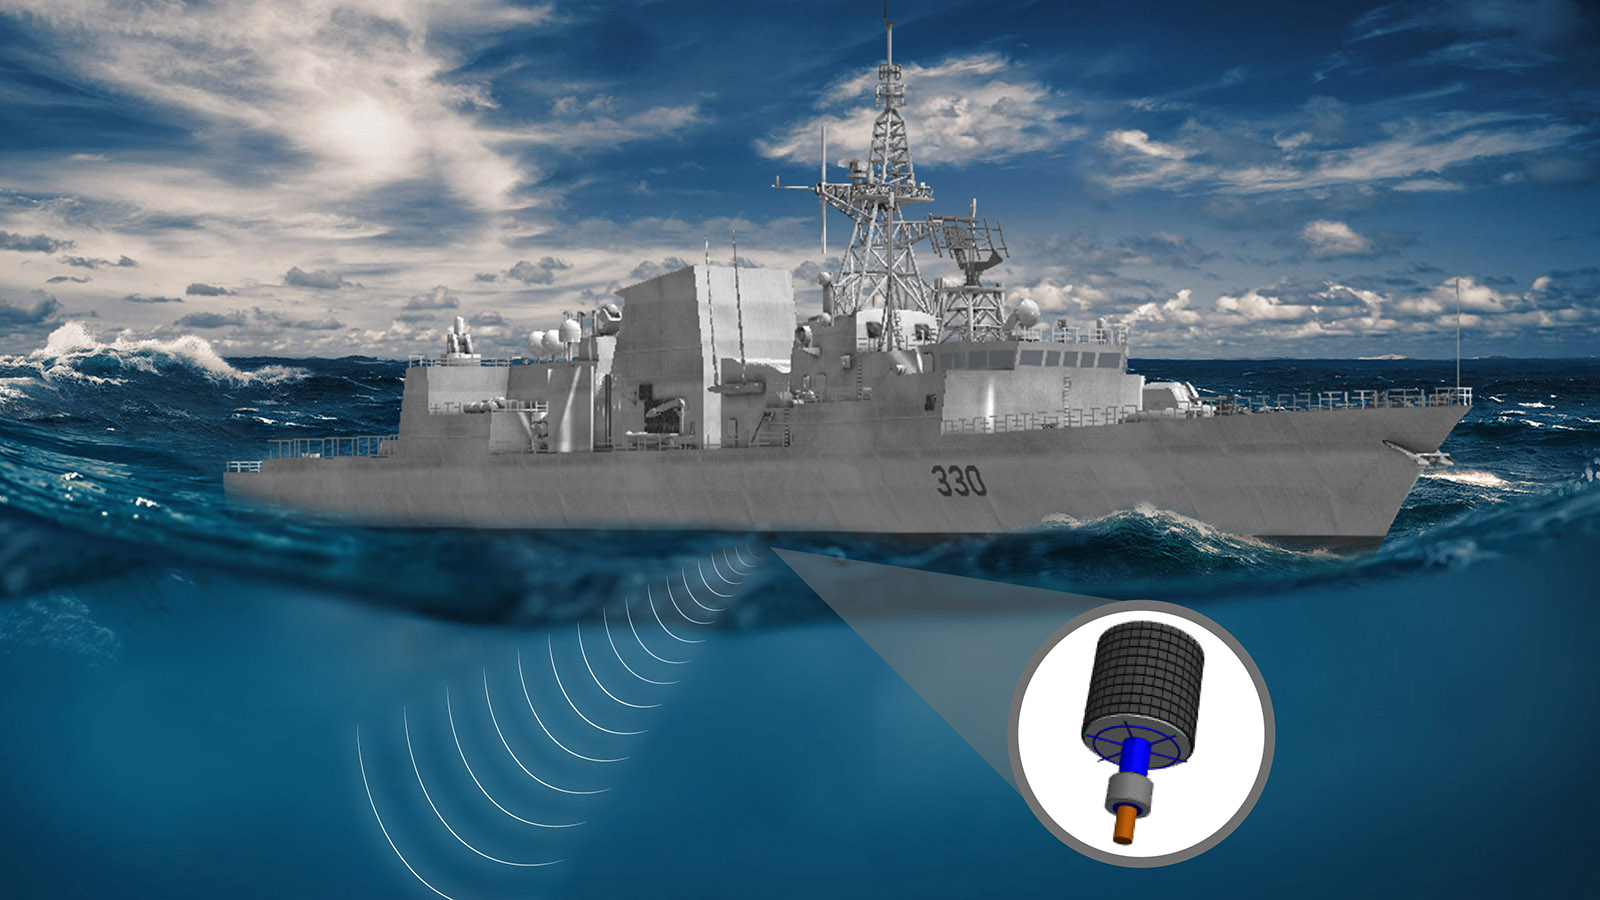 An illustration of the hull mounted sonar.